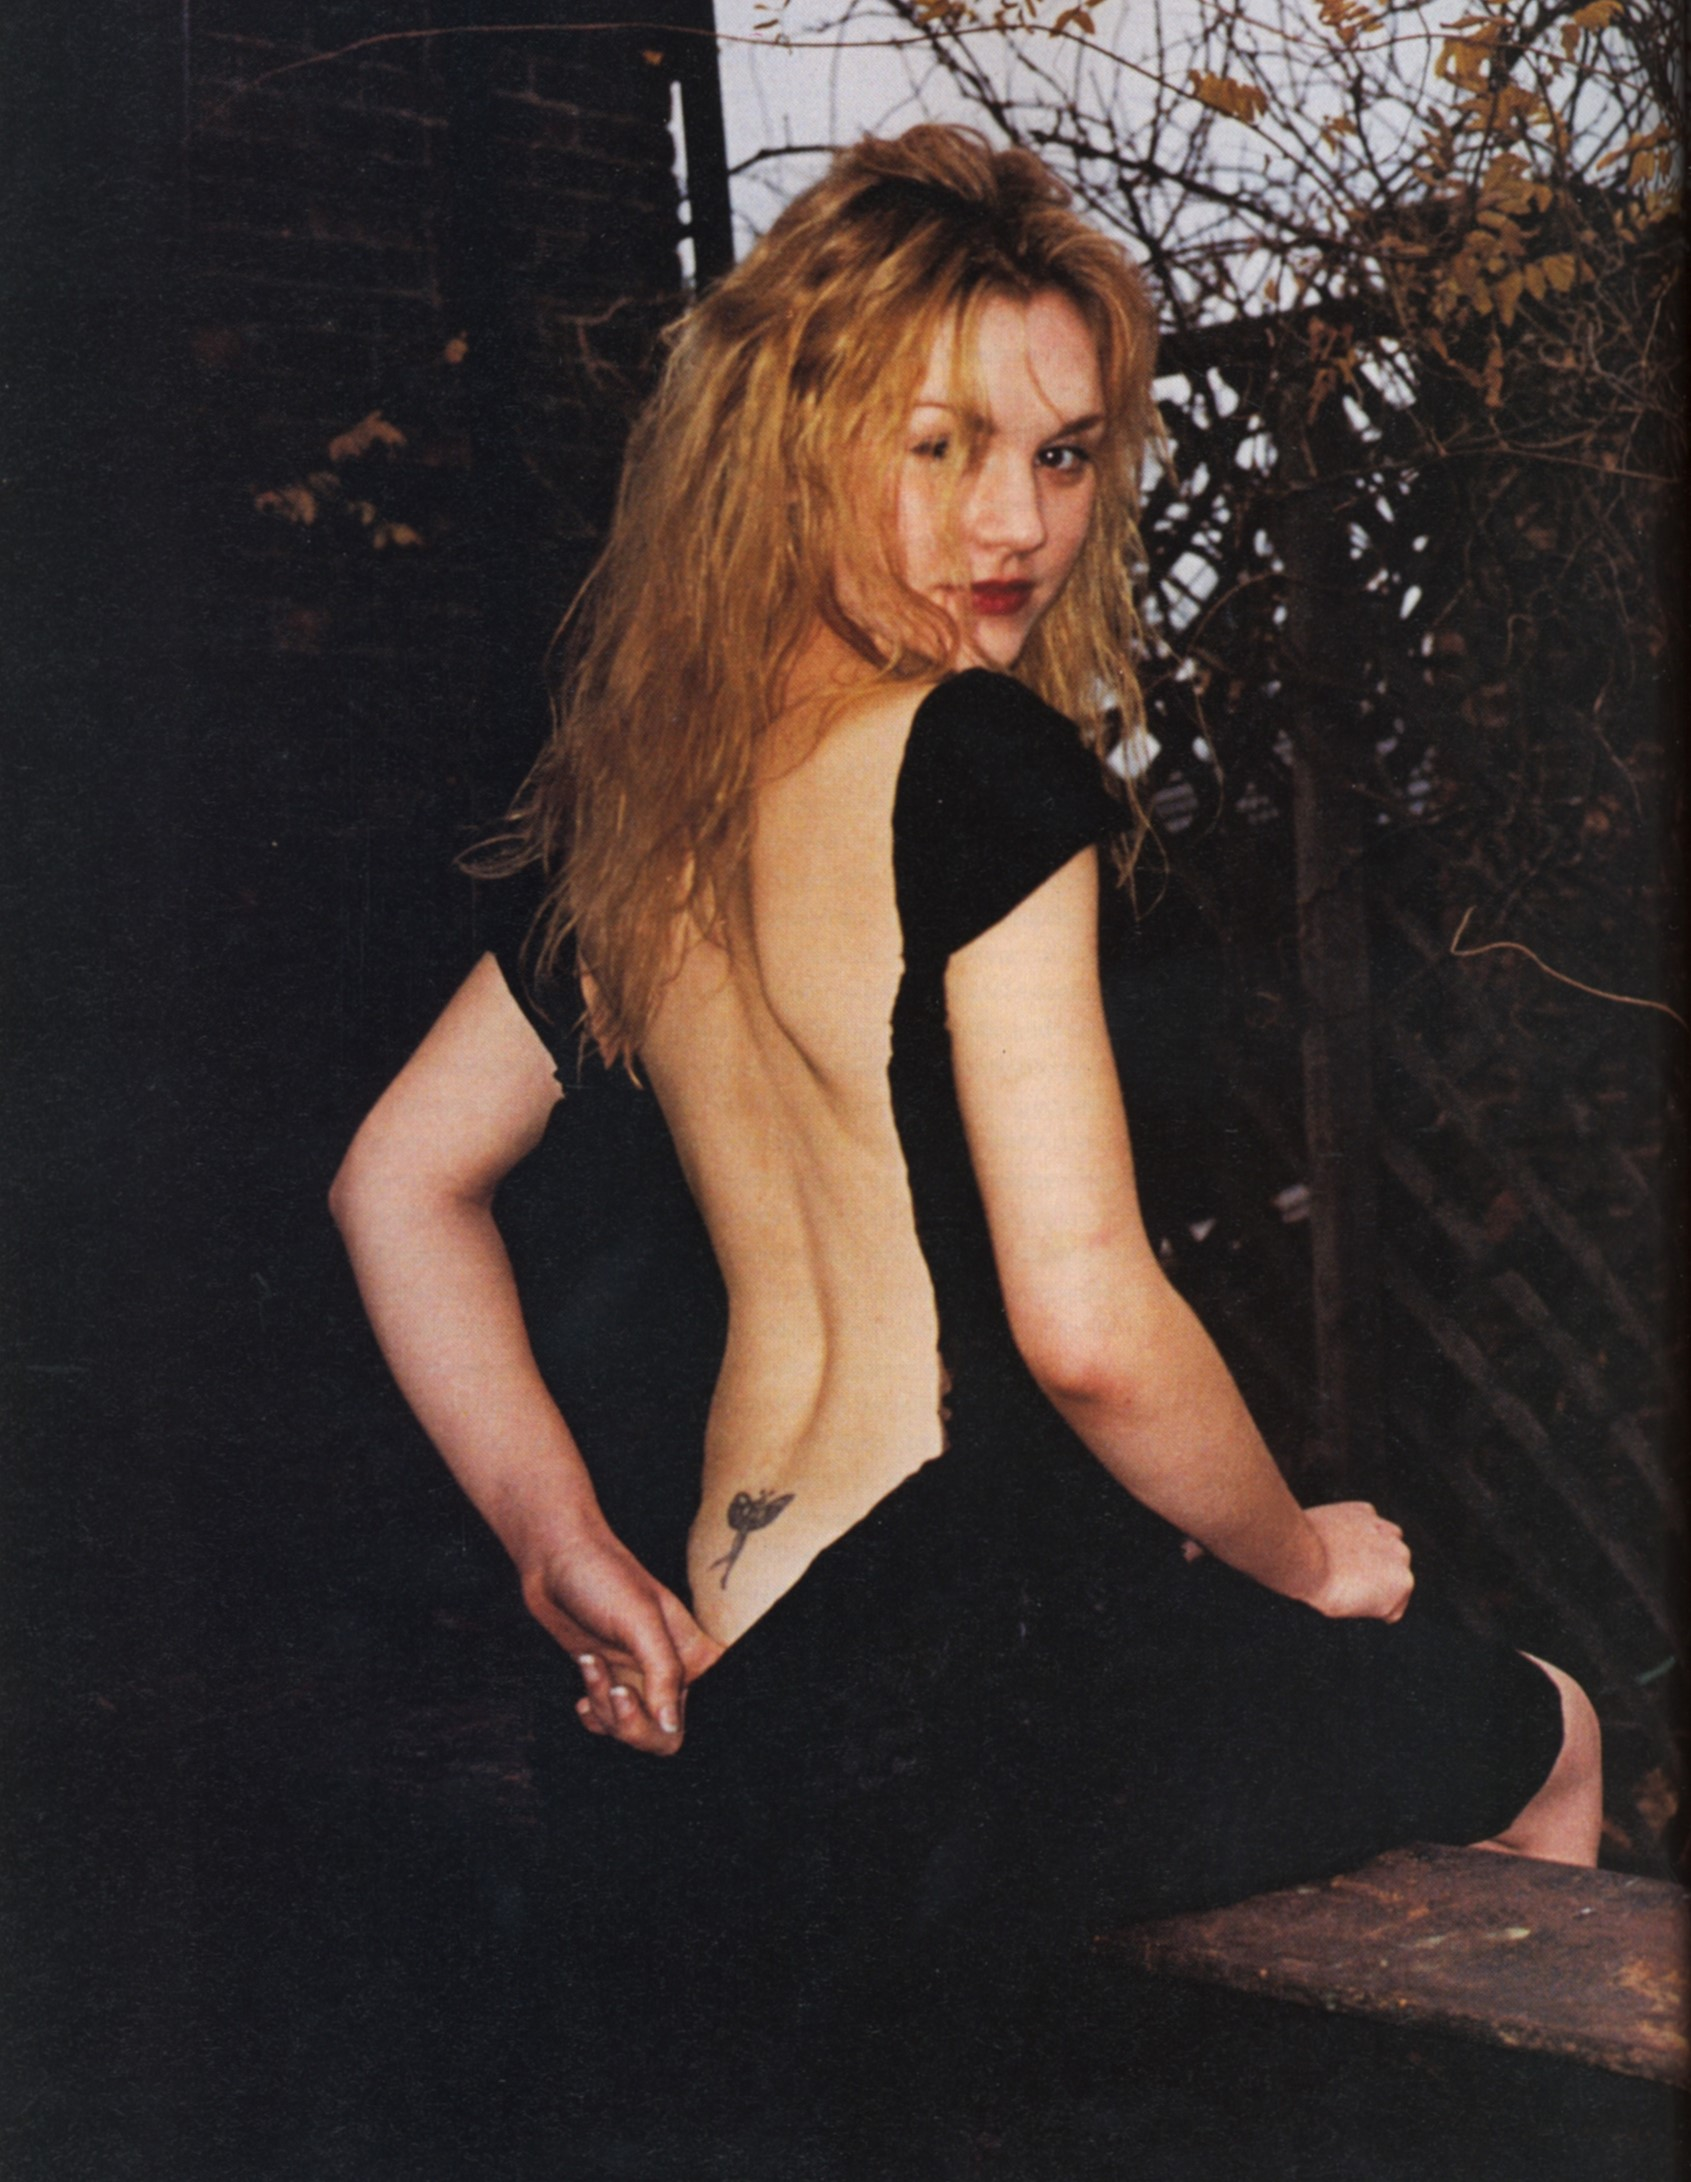 RACHEL MINER | PHOTOGRAPHY MATT JONES | i-D MAGAZINE | MARCH 2002